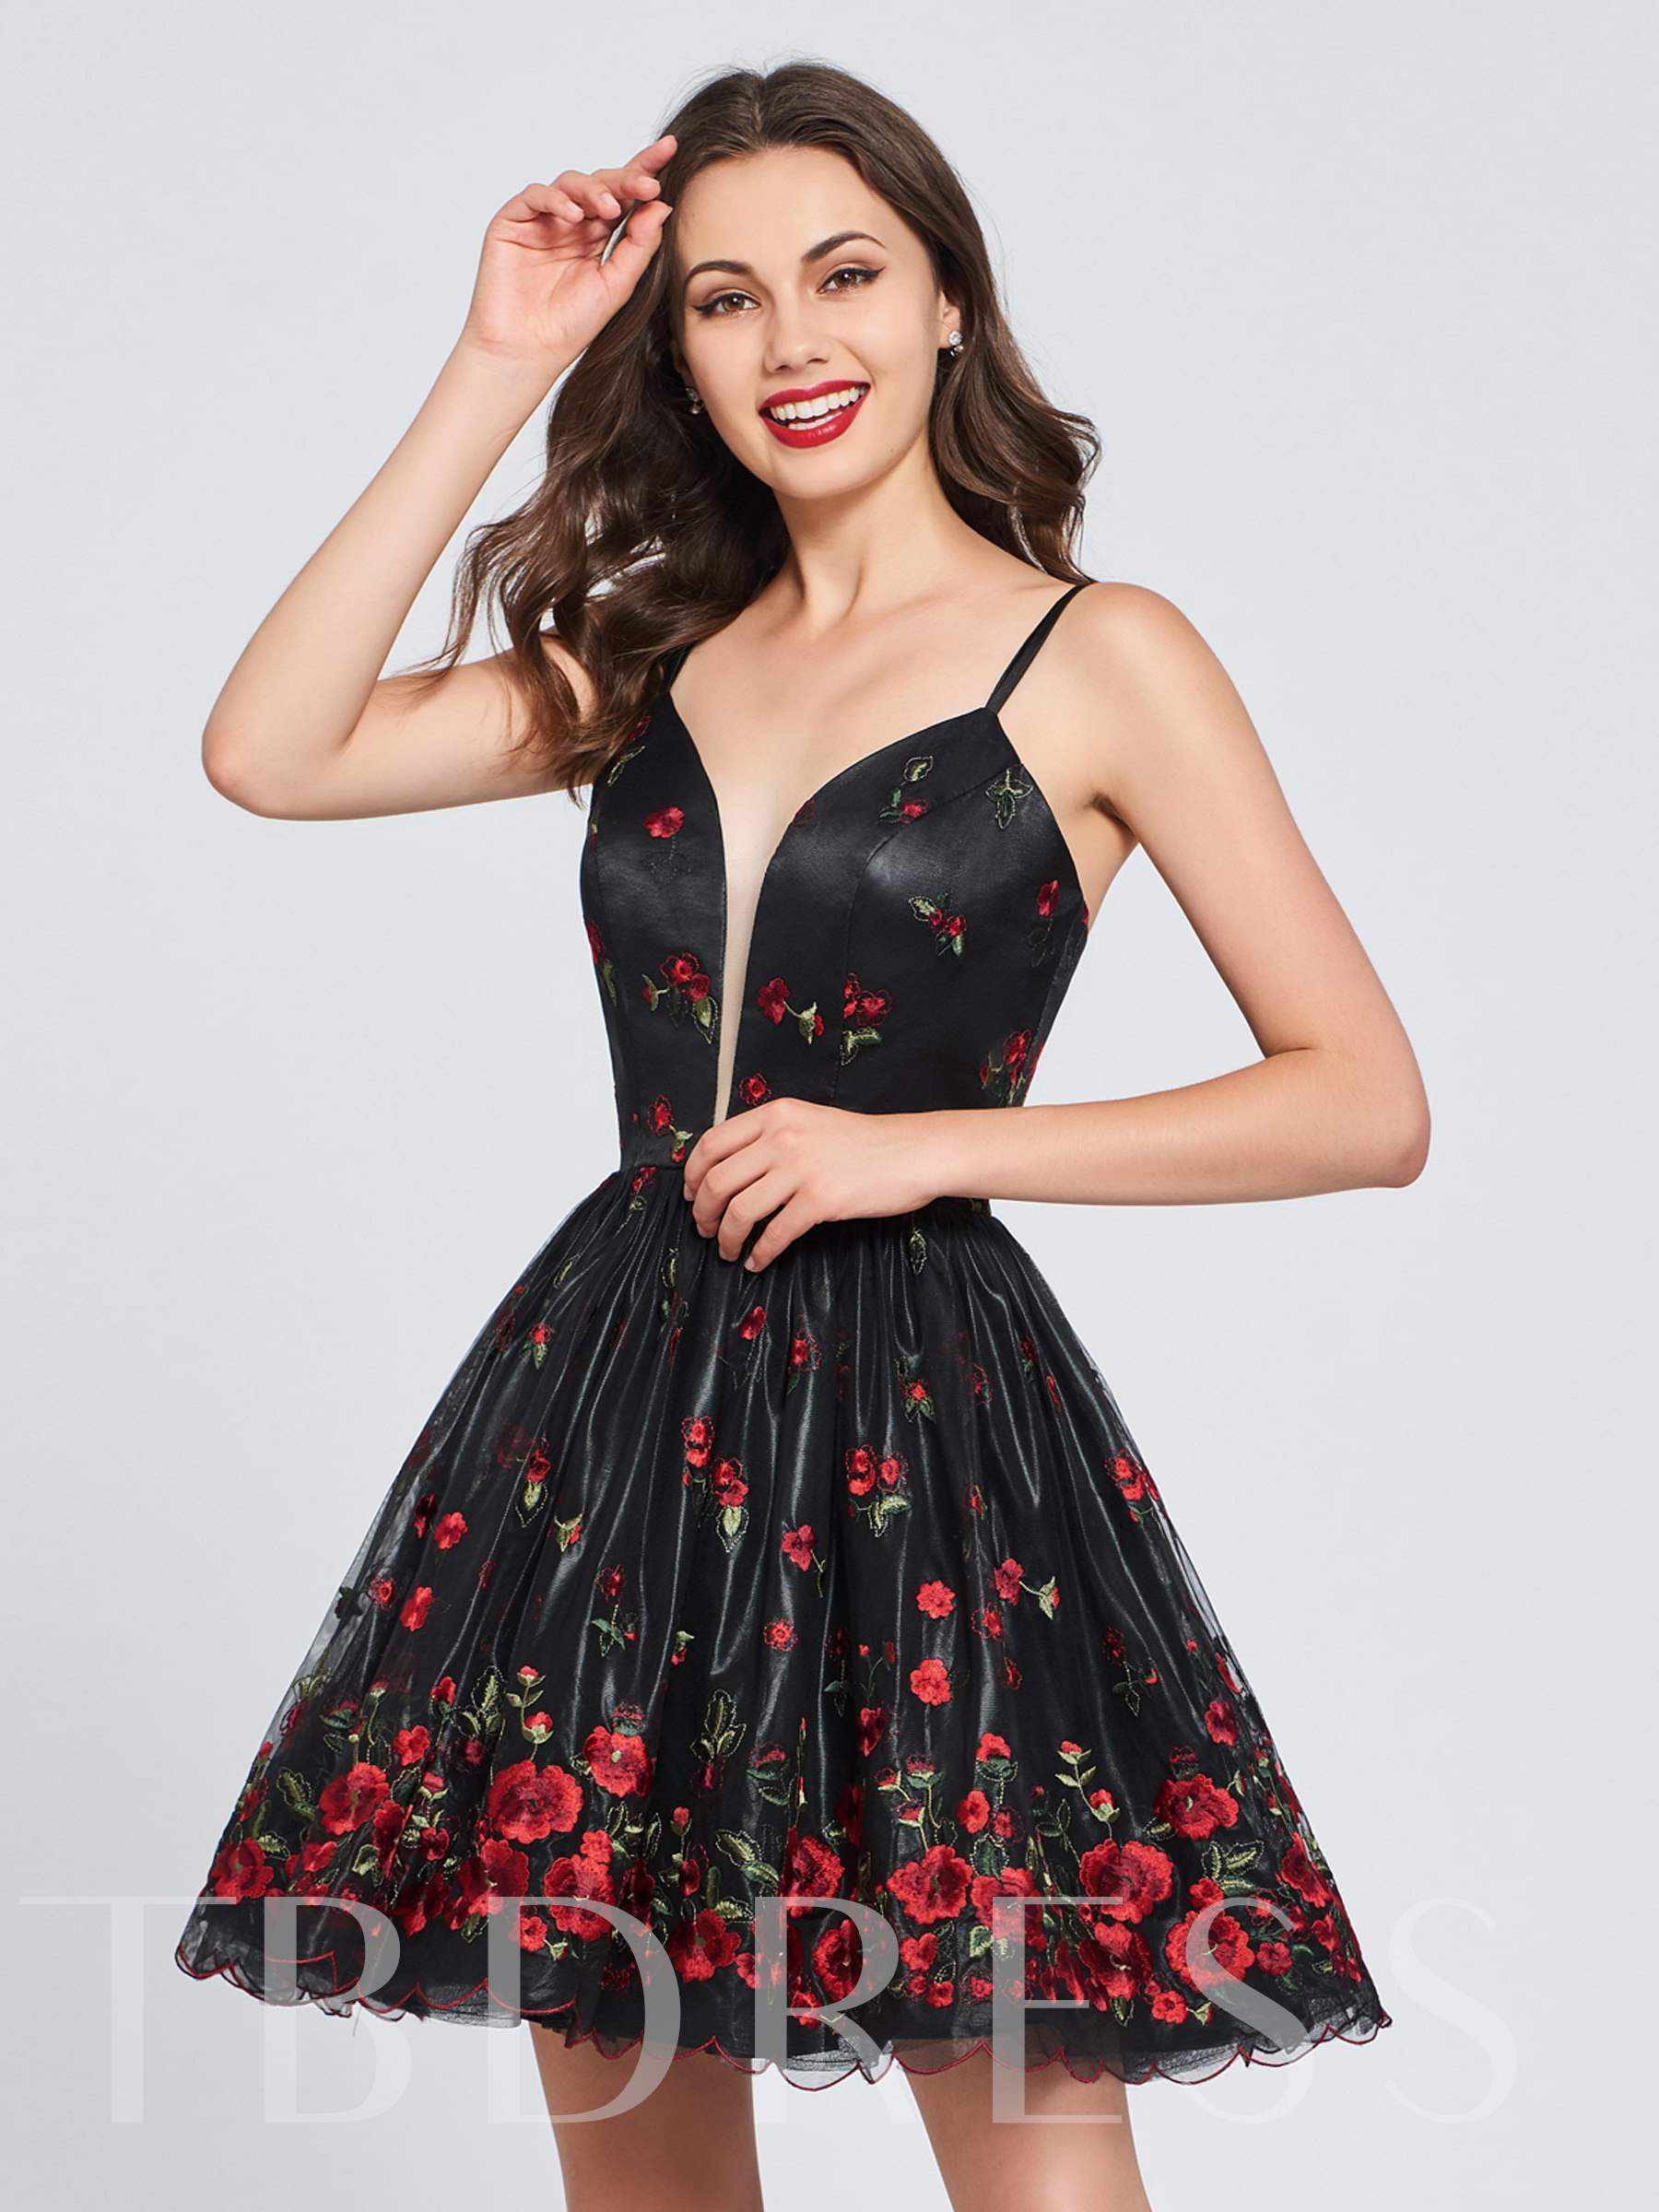 Buy A-Line Lace Sequins Spaghetti Straps Homecoming Dress, Spring,Summer,Fall,Winter, 13384071 for $136.99 in TBDress store